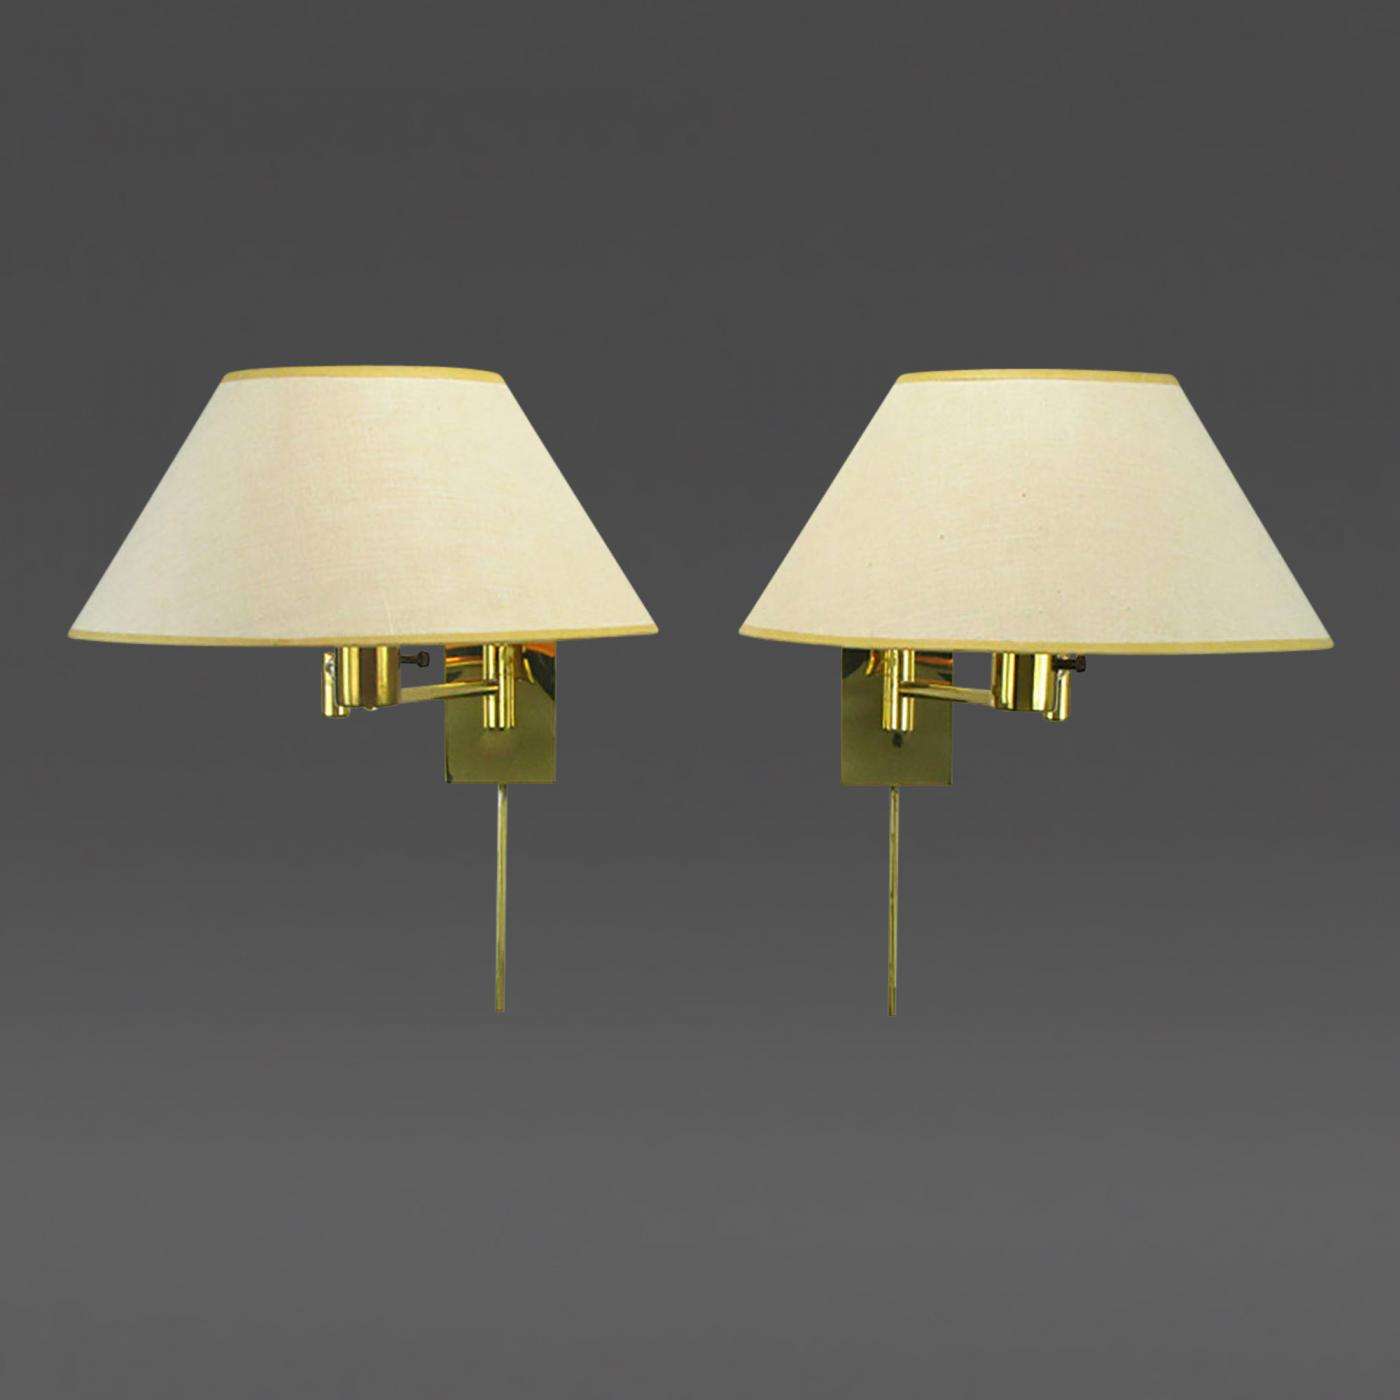 Lighting Wall Lights Walter Von Nessen Pair Of Walter Von Nessen Brass Swing Arm Wall Lamps